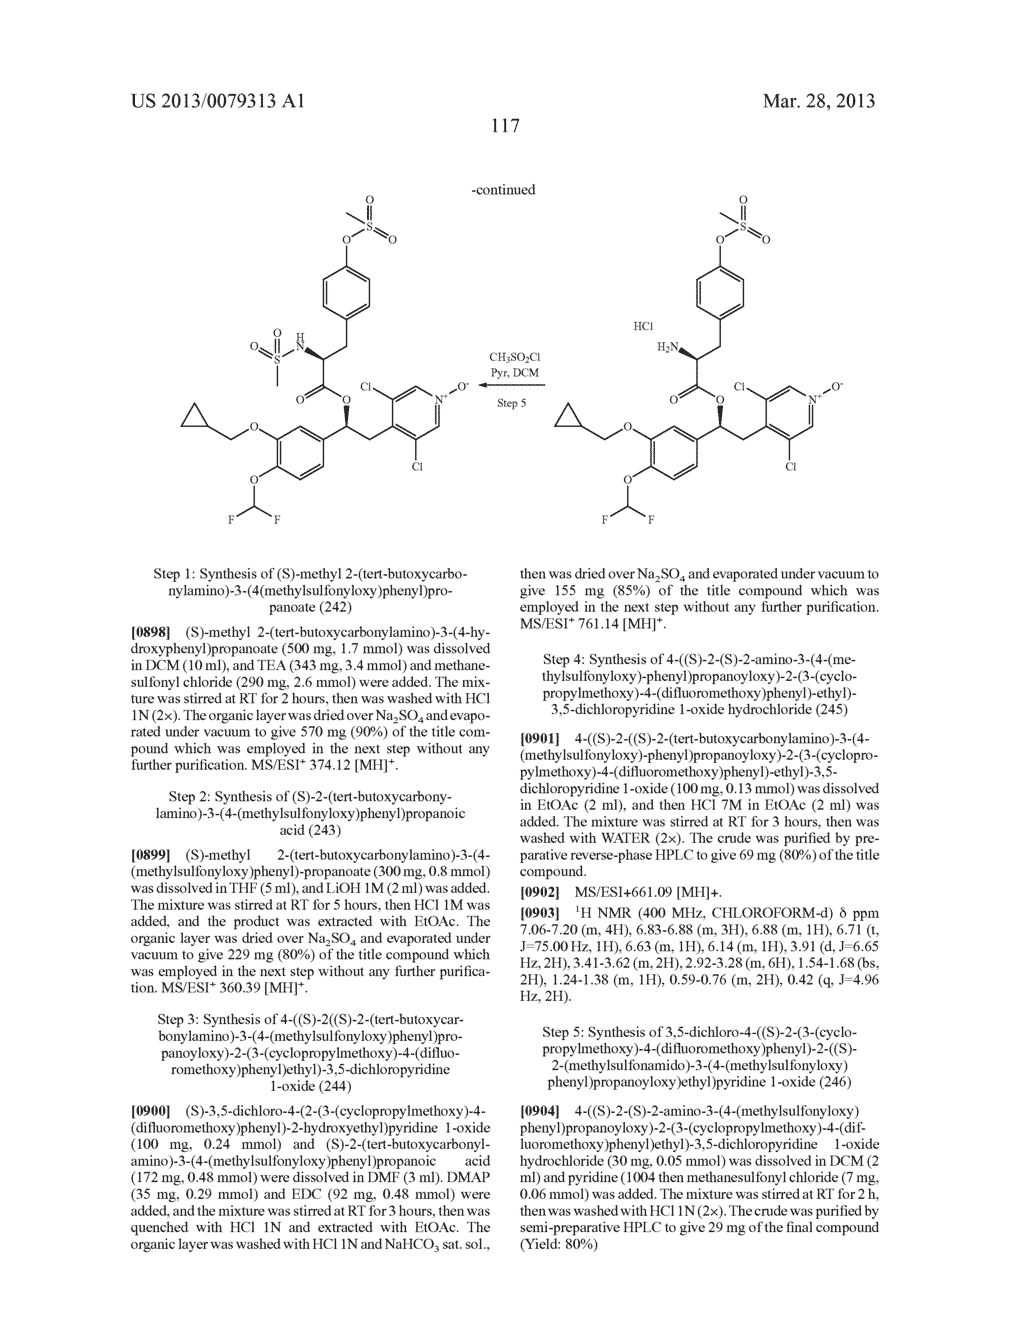 DERIVATIVES OF 1-PHENYL-2-PYRIDINYL ALKYL ALCOHOLS AS PHOSPHODIESTERASE     INHIBITORS - diagram, schematic, and image 118